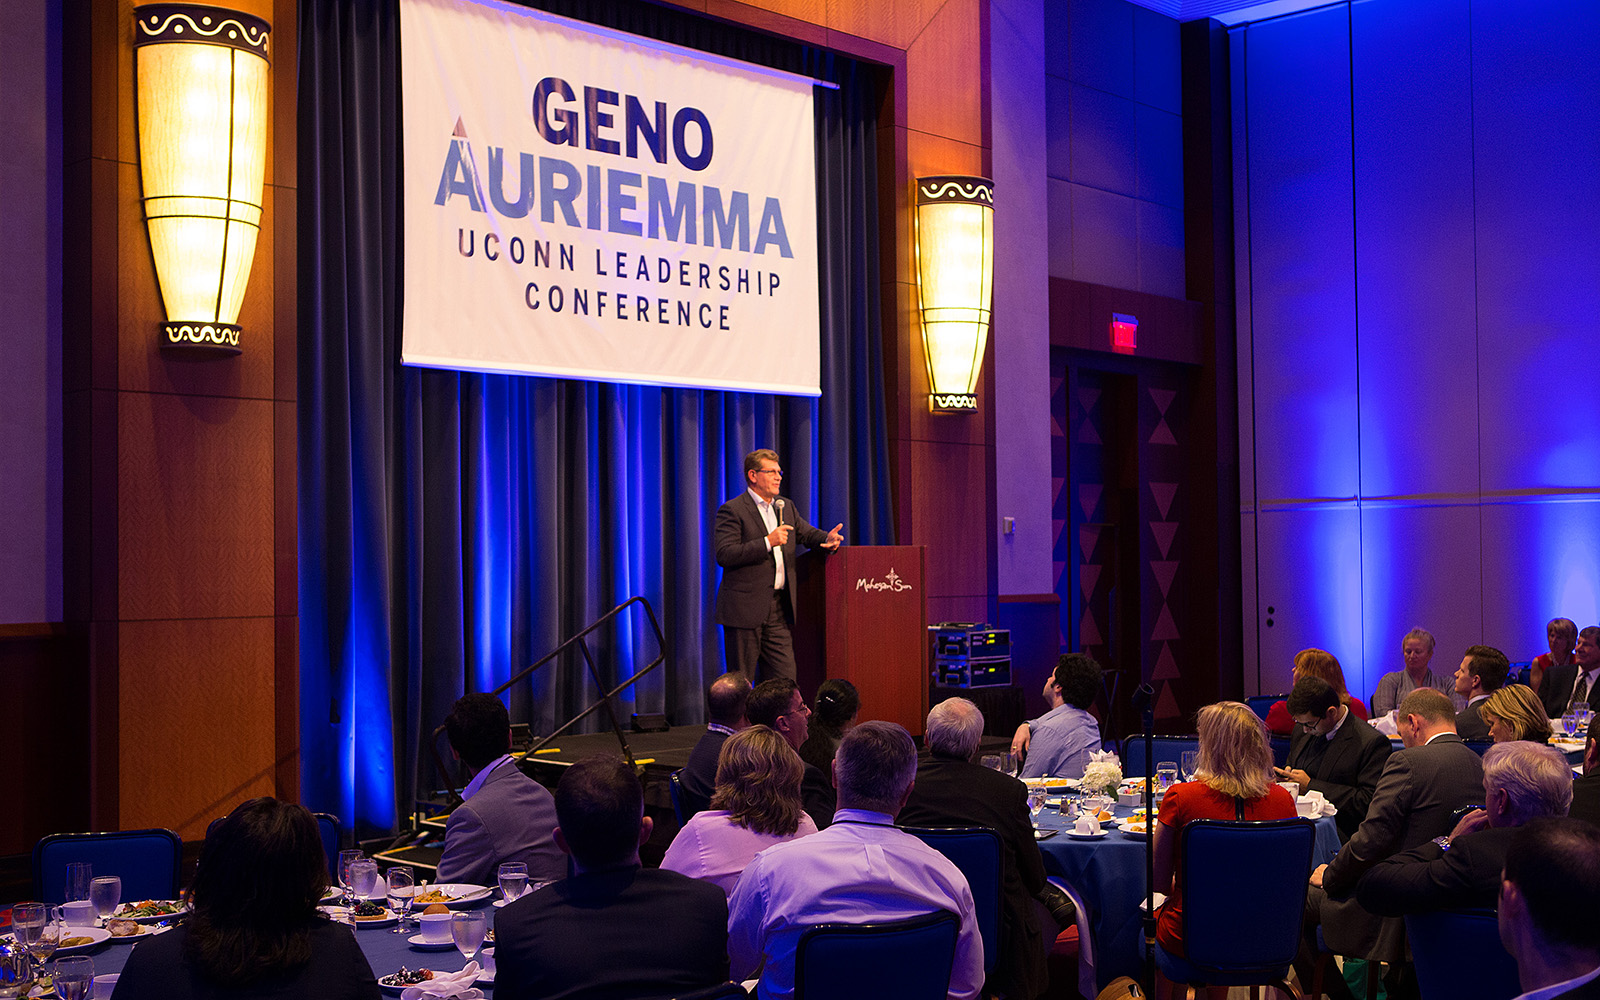 Geno Auriemma UConn Leadership Conference Announces Prominent Speakers at October Event